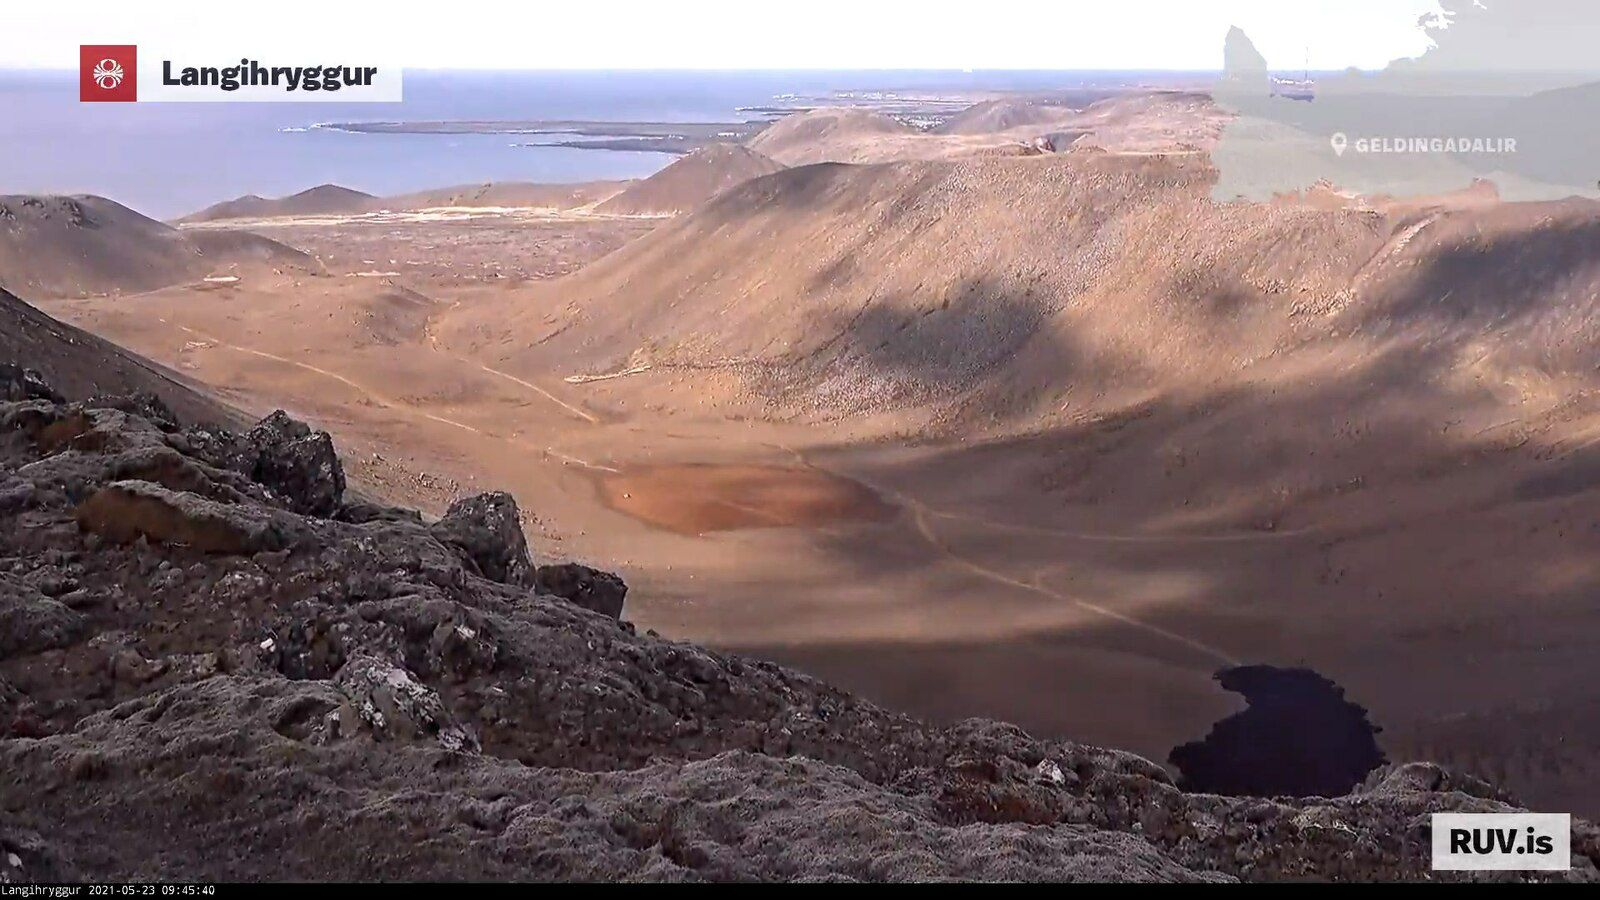 Eruption of Fagradalsfjall - Valley of Nátthaga - advance of the flow towards the sea on 23.05.2021 / 09:45 - Langihryggur webcam (reverse point of view compared to the previous photo)